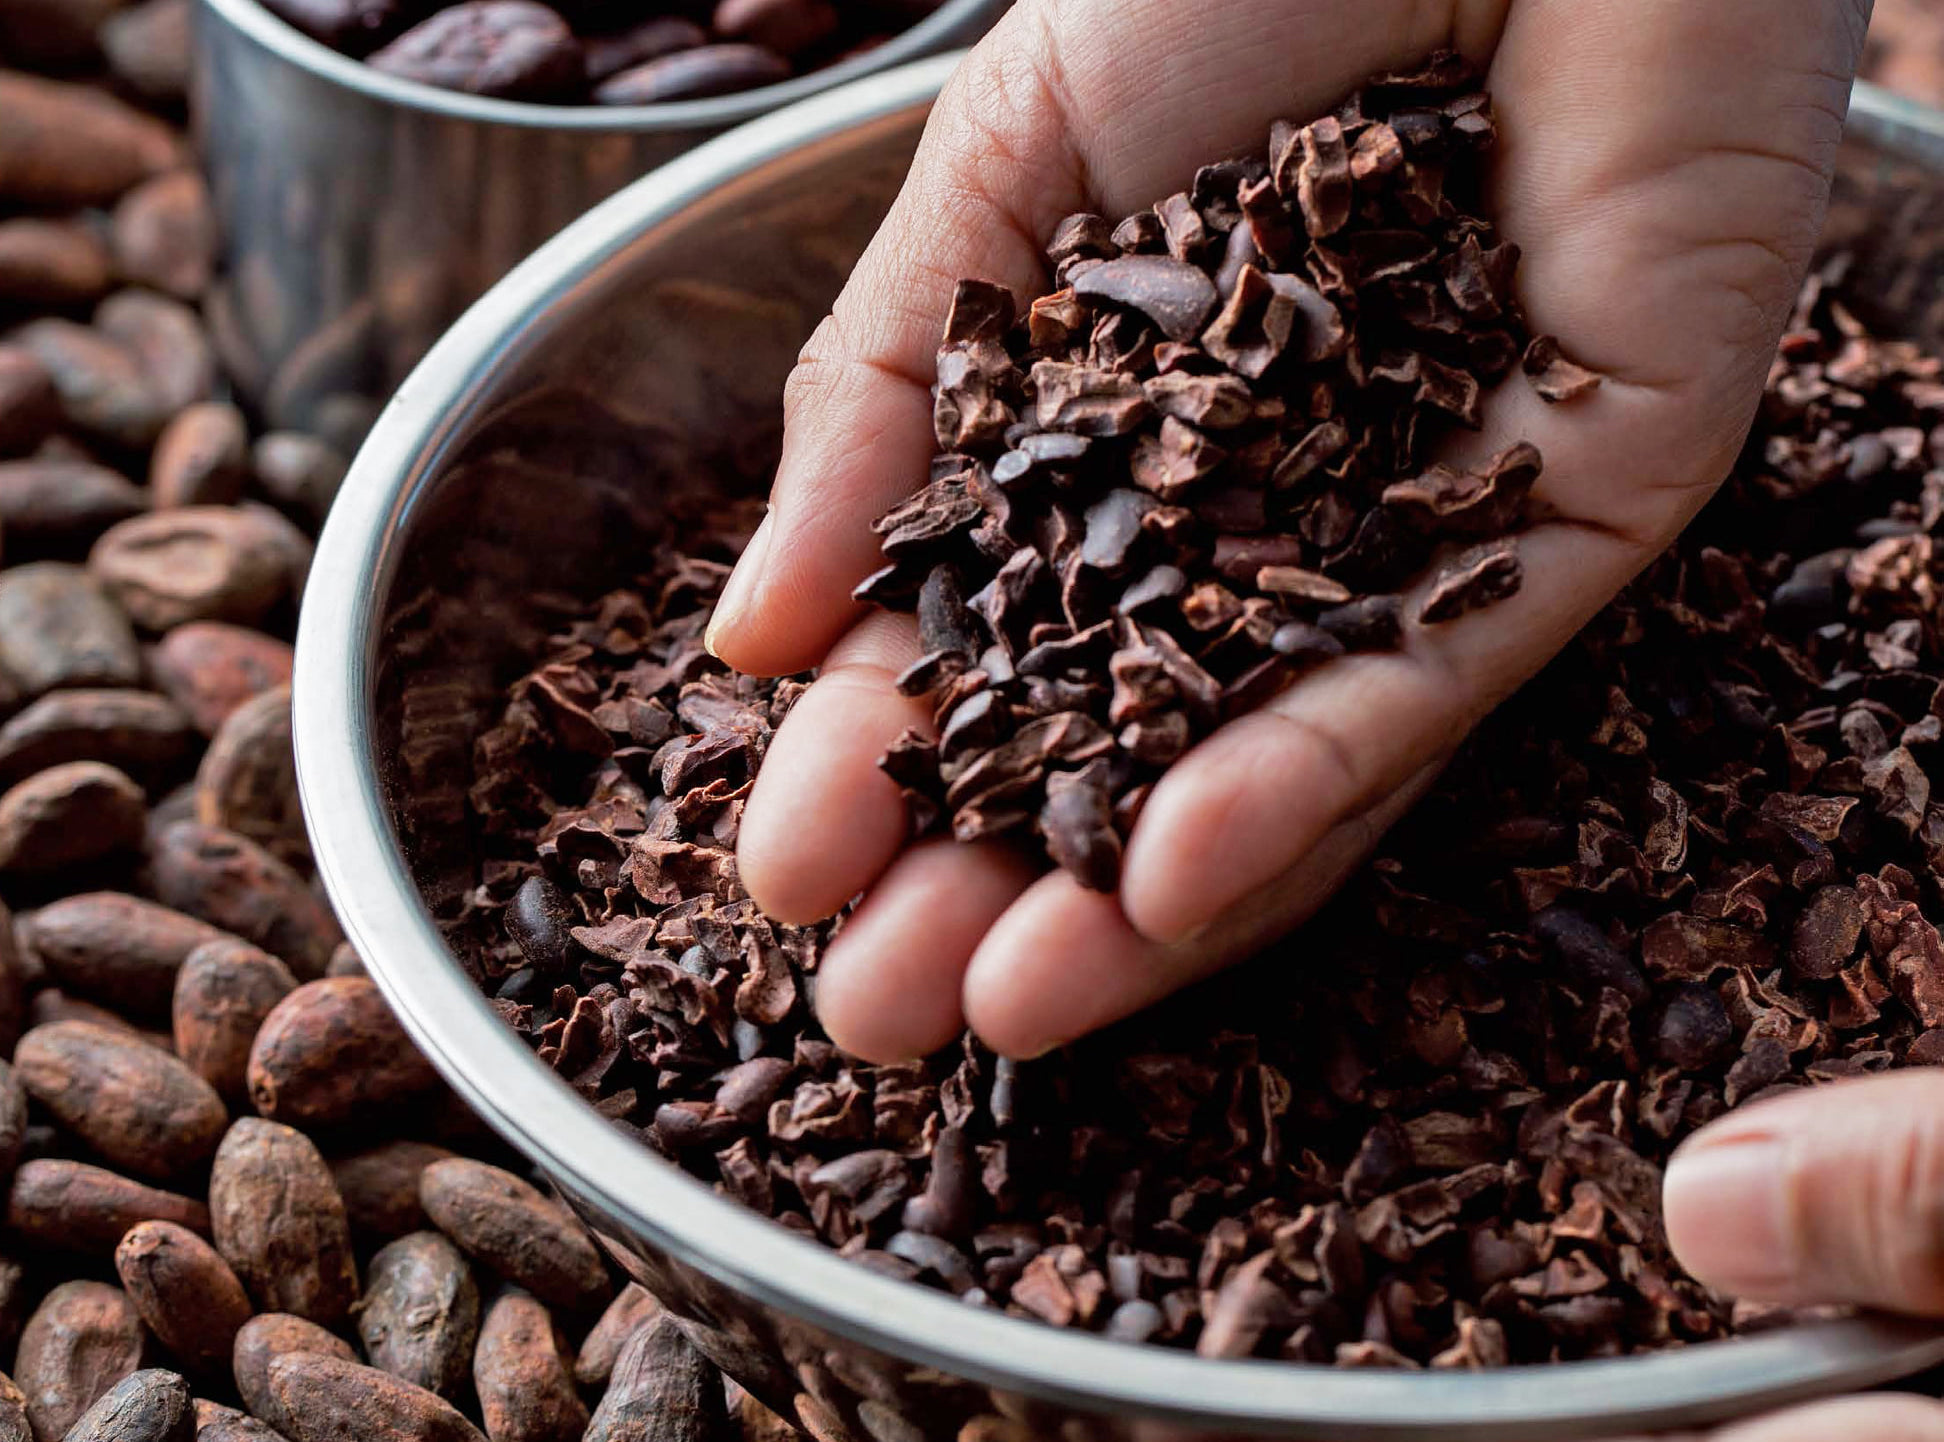 Guide to Chocolates in the Philippines: Where to Get the Best, Farm Tours, Local Brands